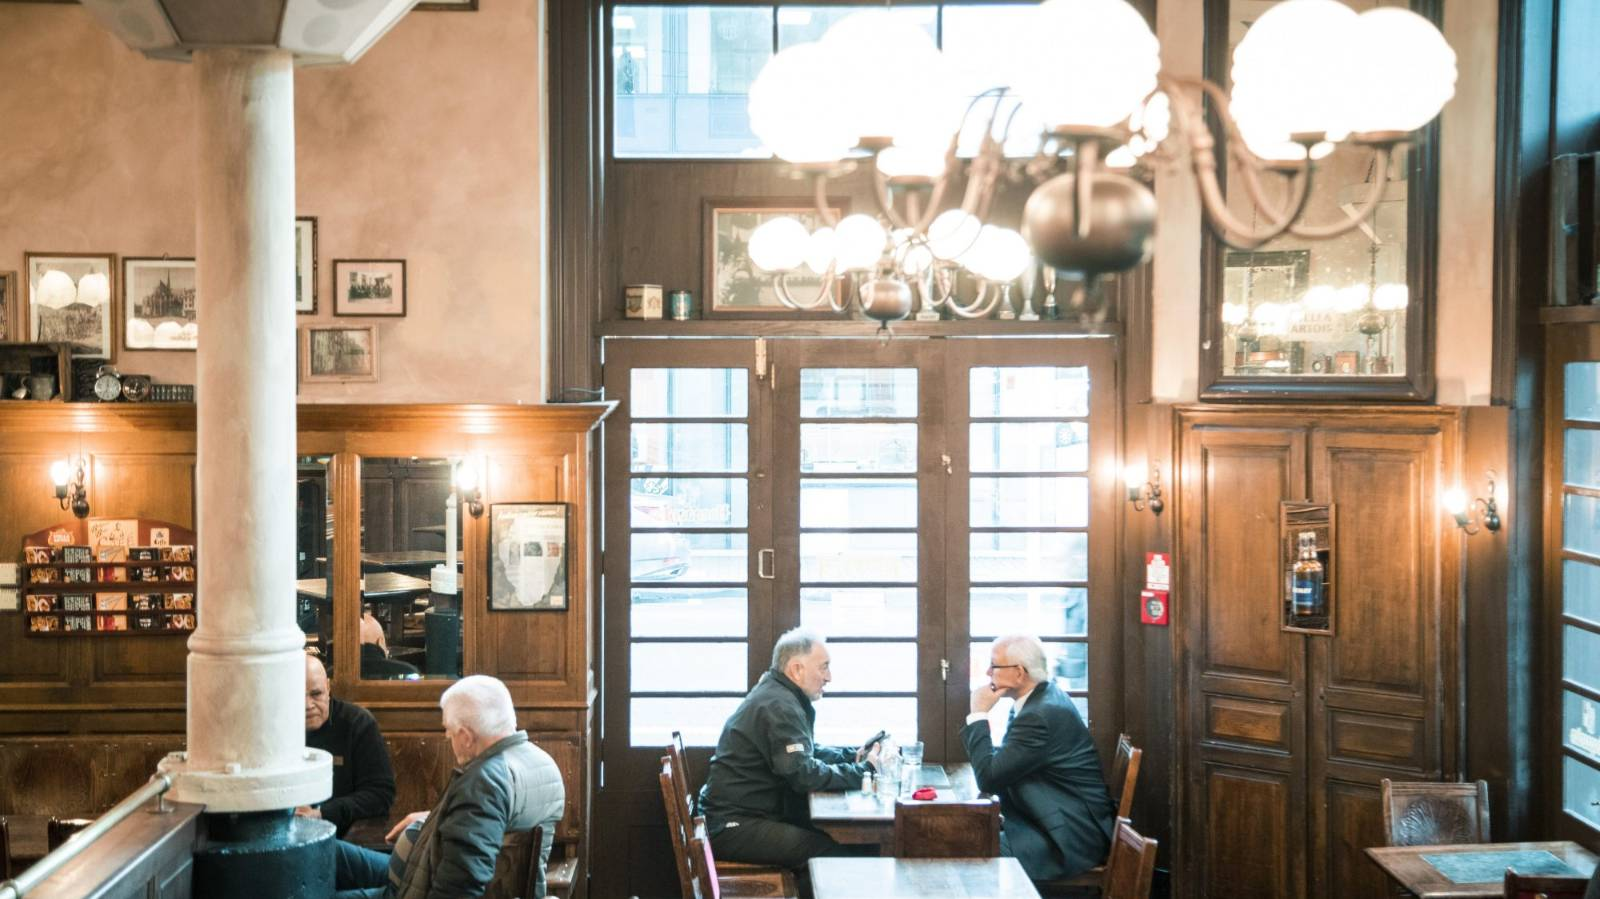 The sale of three well-known Wellington bars falls over